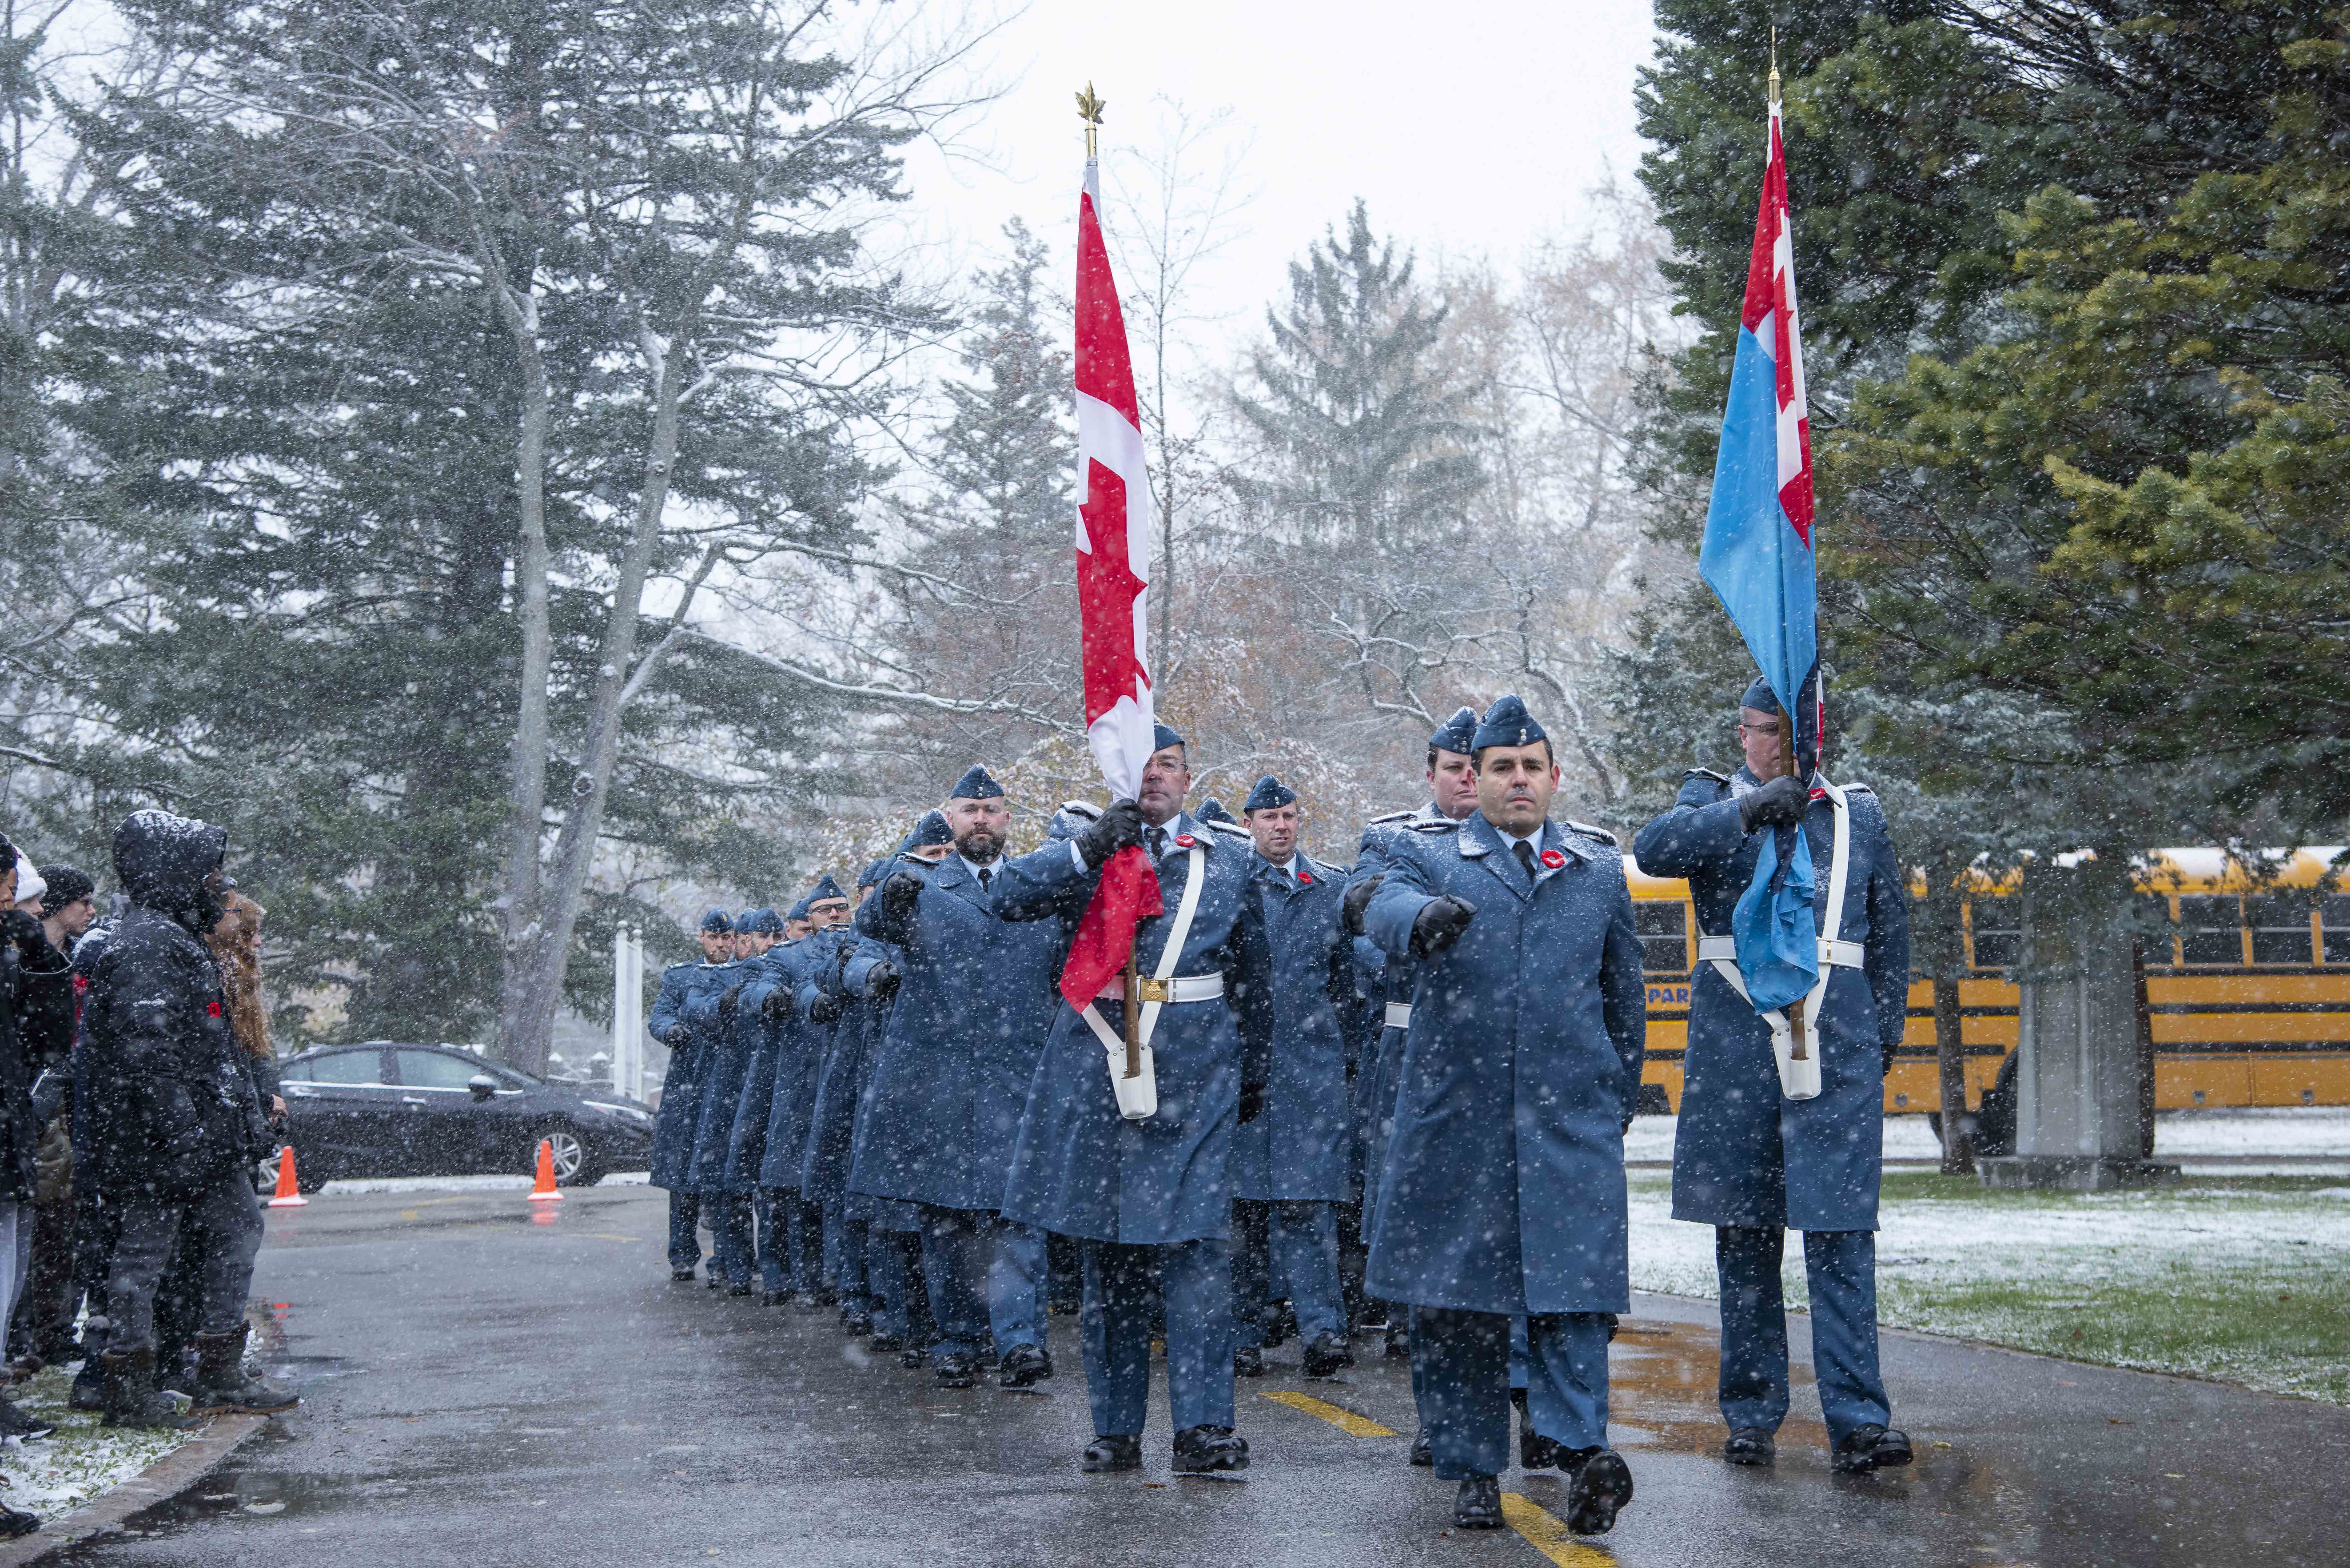 Members of the Royal Canadian Air Force march towards the location of the 2019 Remembrance Day ceremony held at Mount Pleasant Cemetery in Toronto. PHOTO: Corporal Lynette Ai Dang, BM10-2019-0359-007